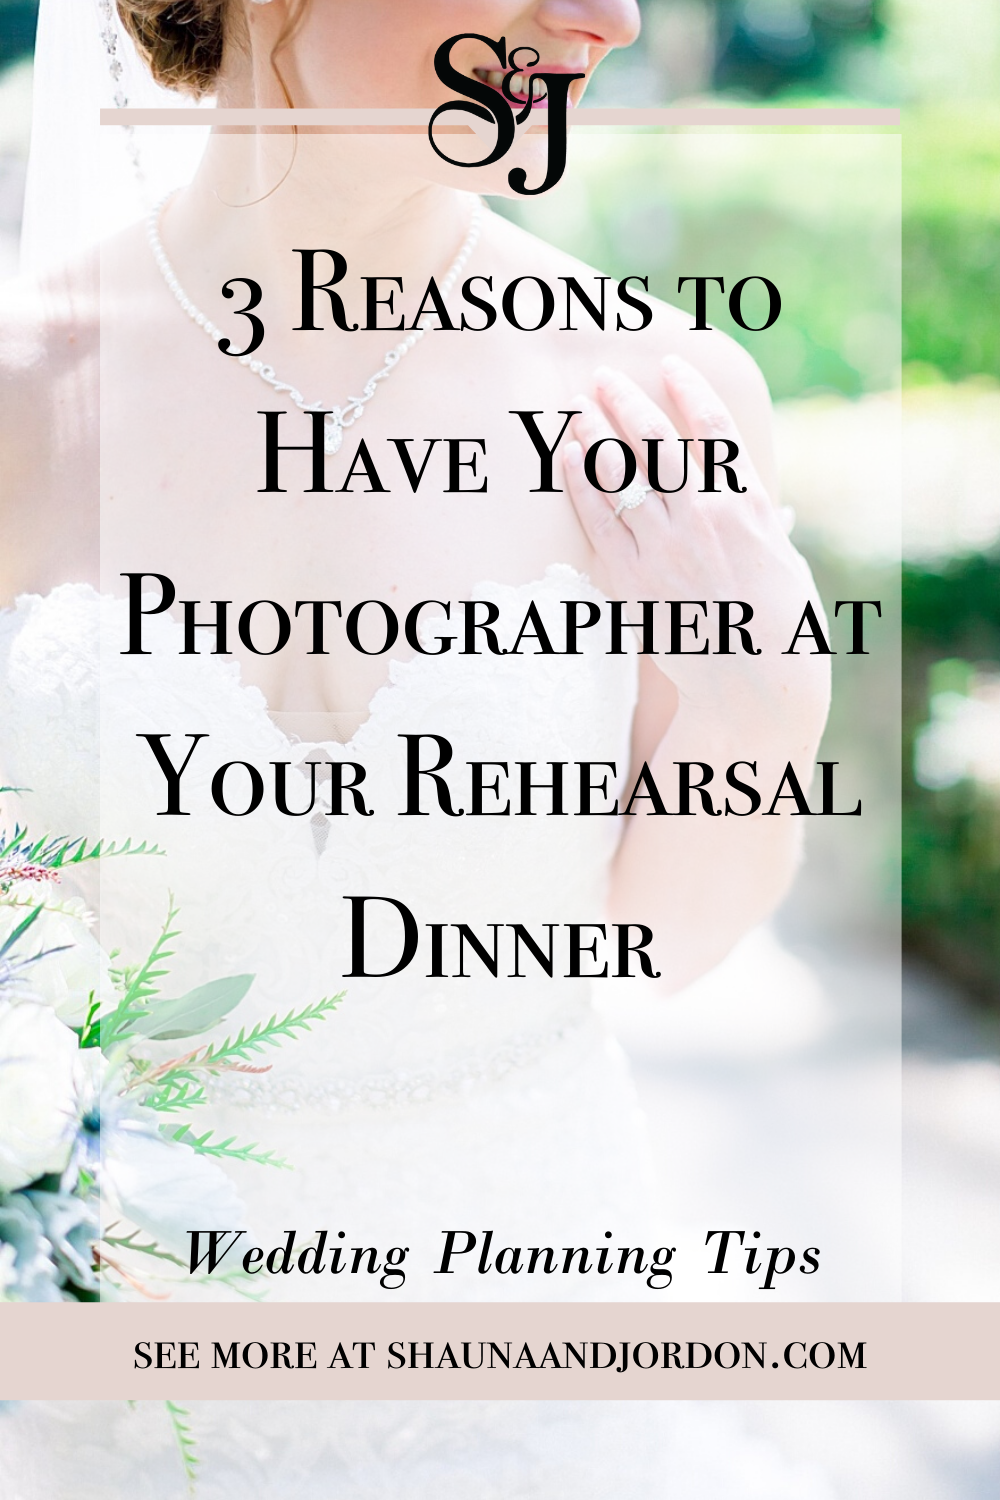 3 Reasons to Have Your Photographer at Your Rehearsal Dinner1